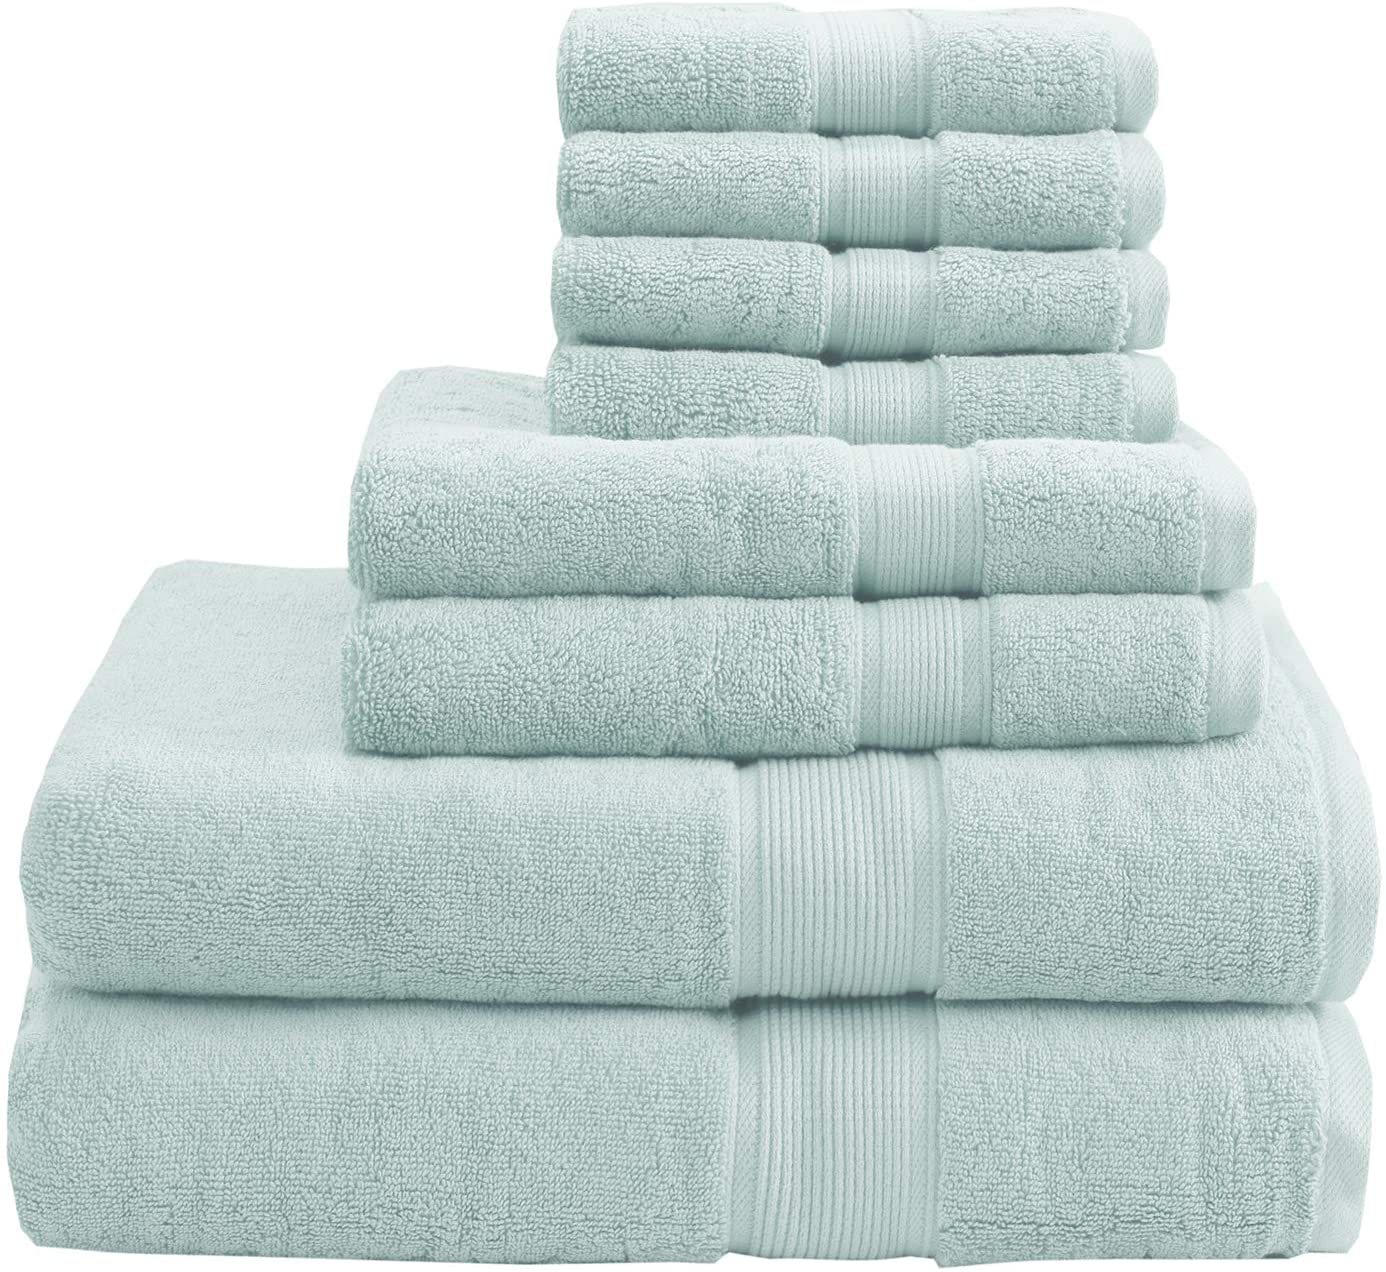 MADISON PARK SIGNATURE 800GSM 100% Cotton 8 Piece Towel Set Seafoam See Below